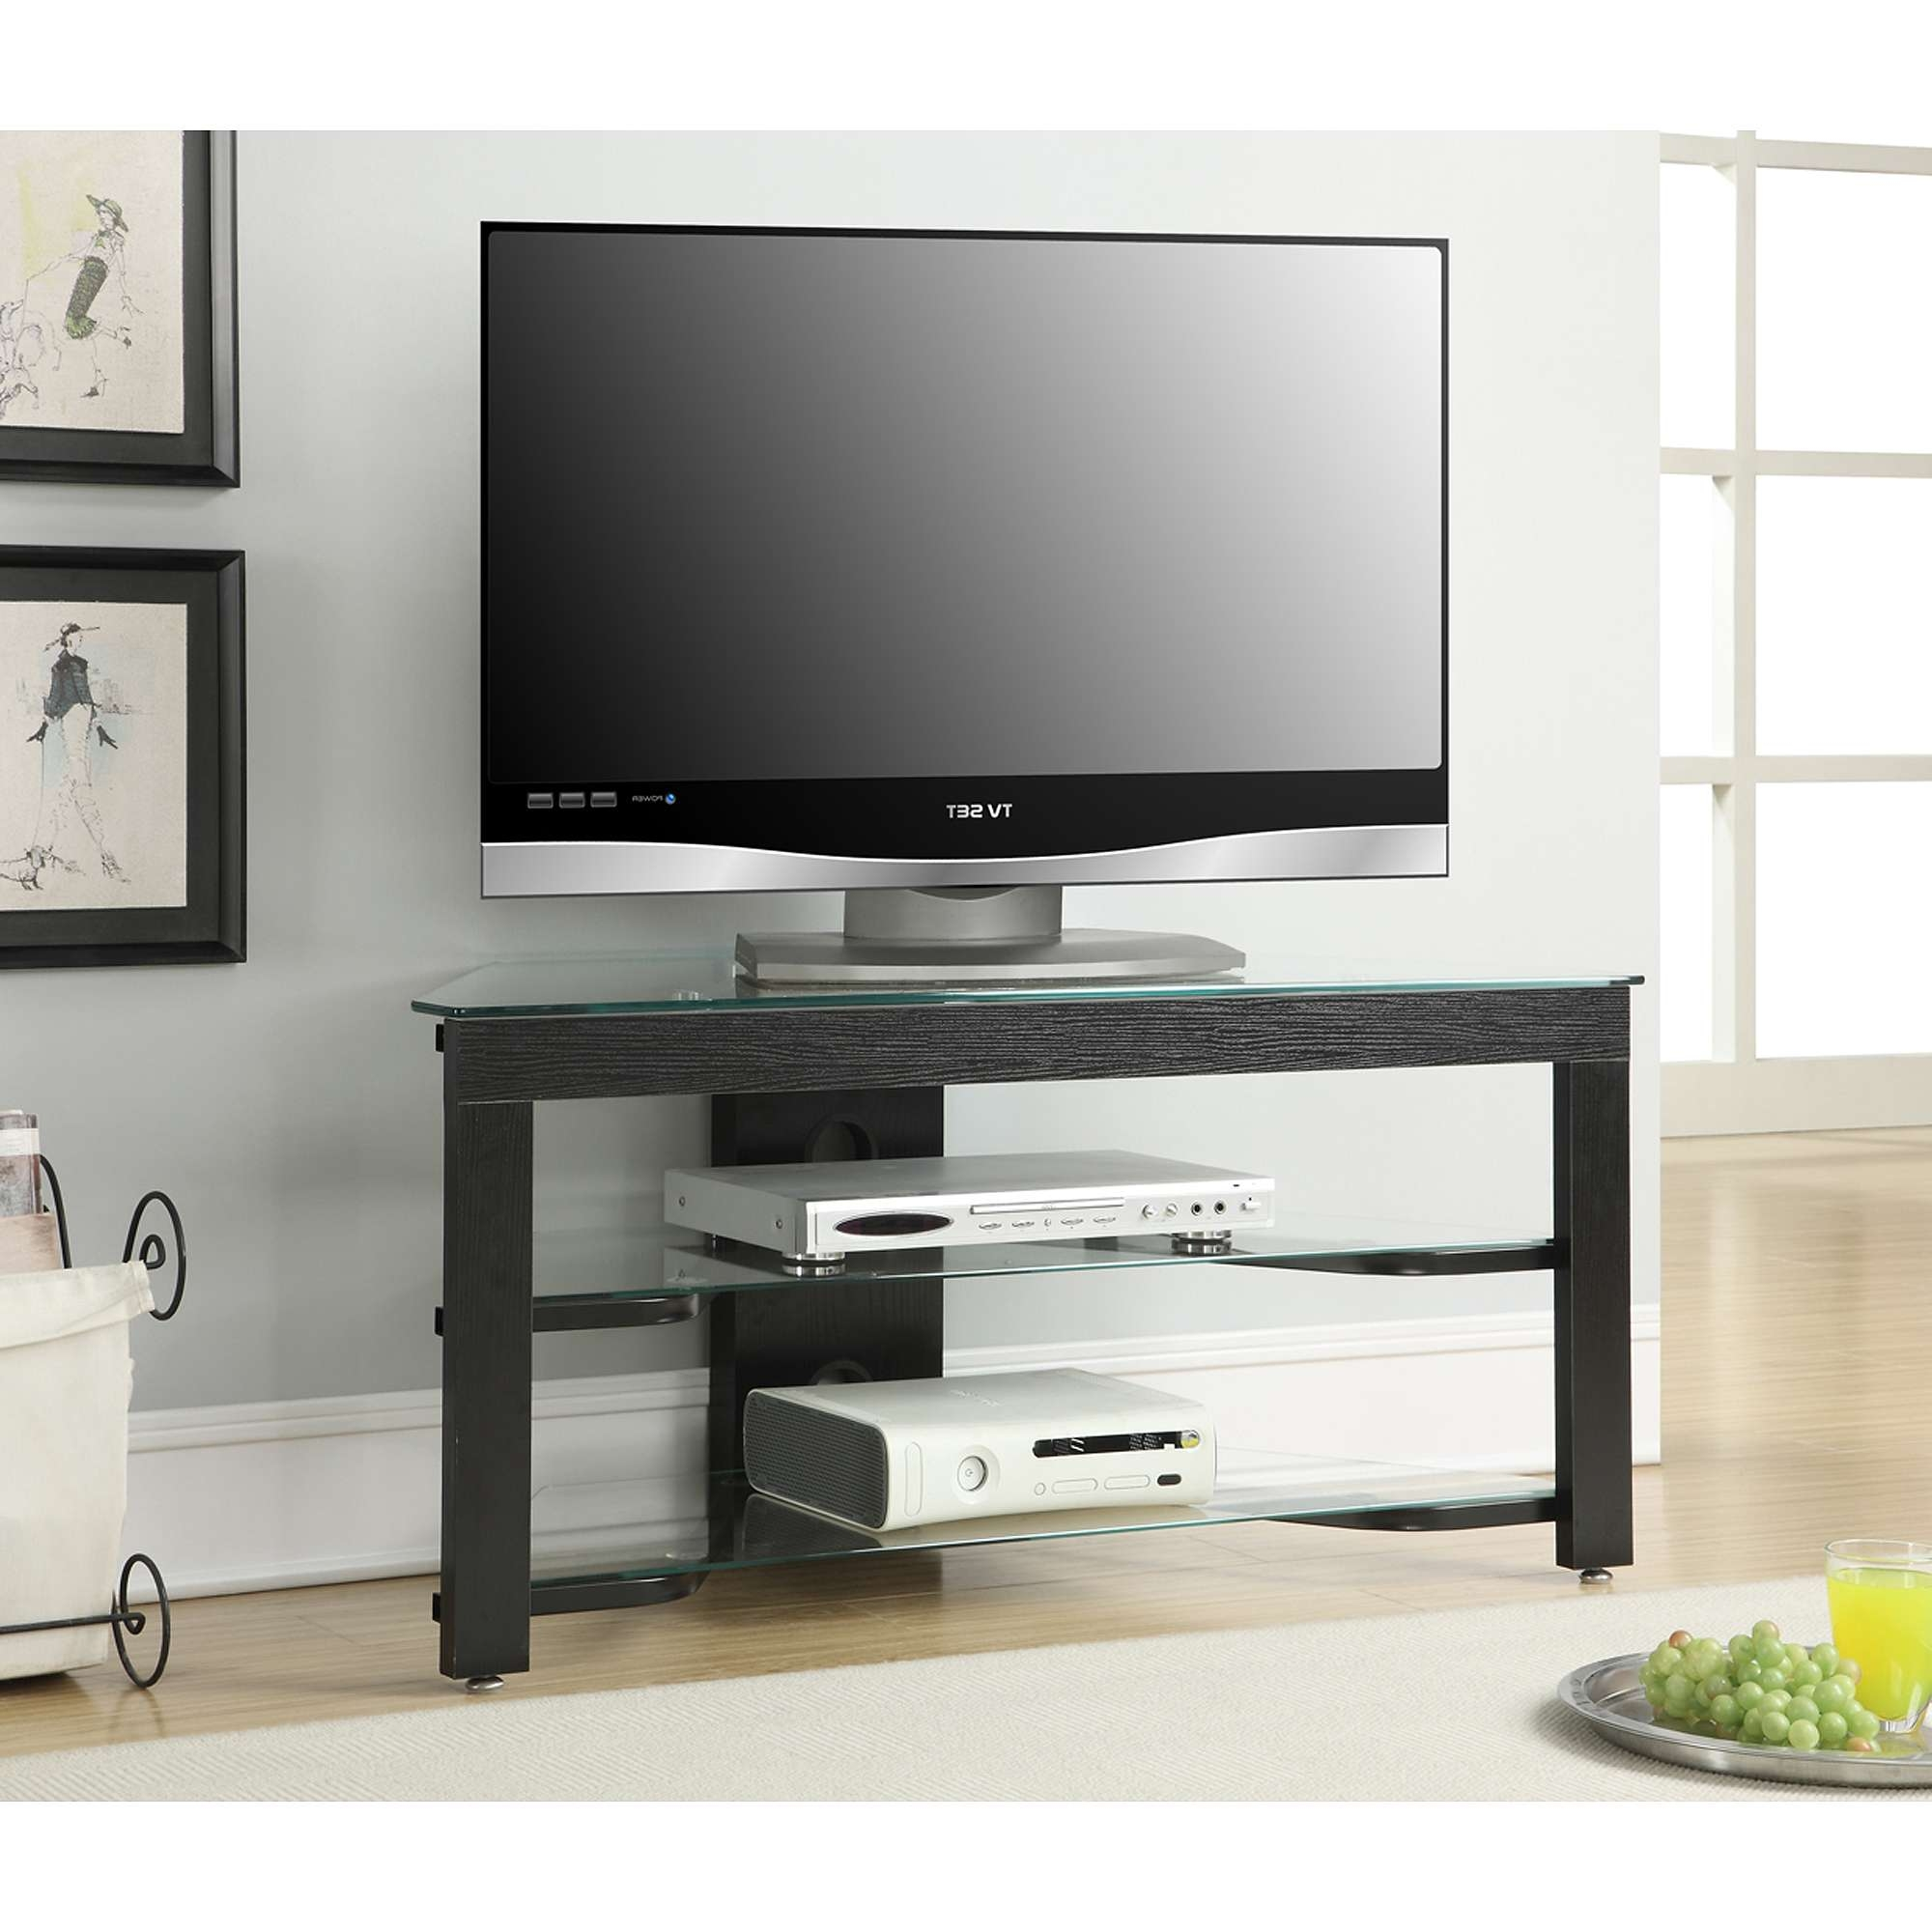 Convenience Concepts Designs2go Wood And Glass Tv Stand For Tvs Up In Wood And Glass Tv Stands For Flat Screens (View 10 of 20)